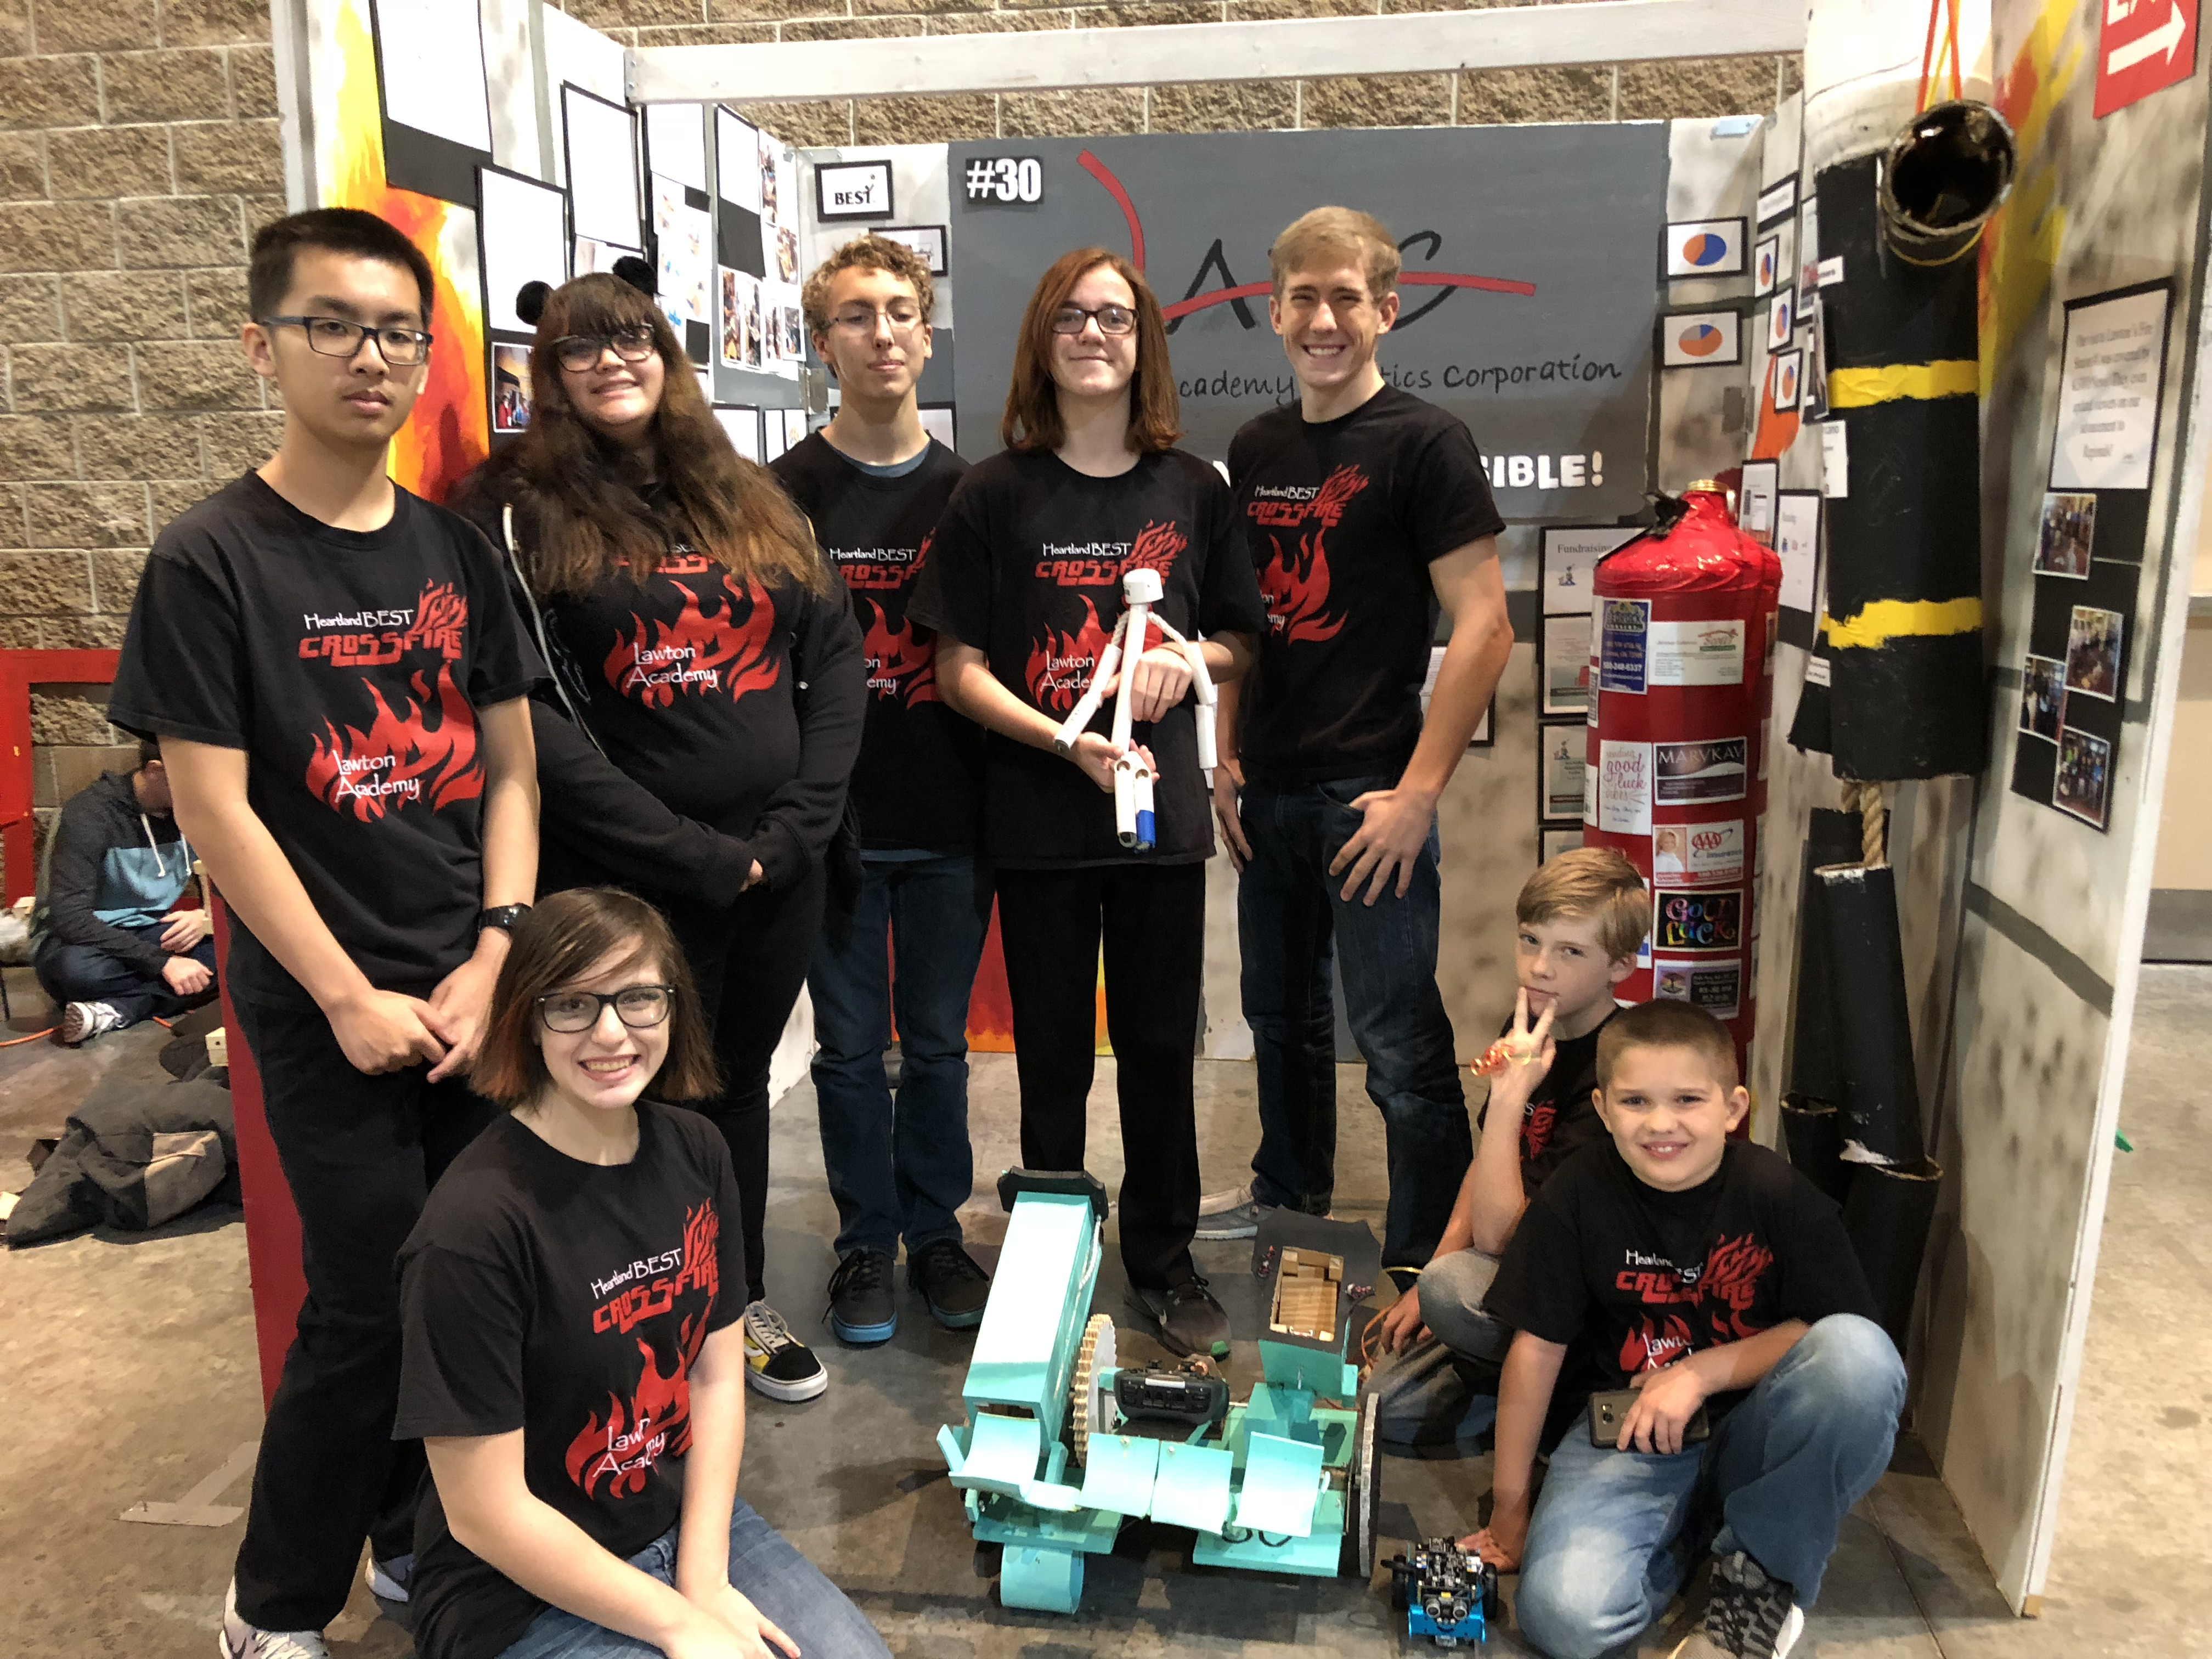 LAAS Exhibit at Frontier Trails BEST Robotics Competition